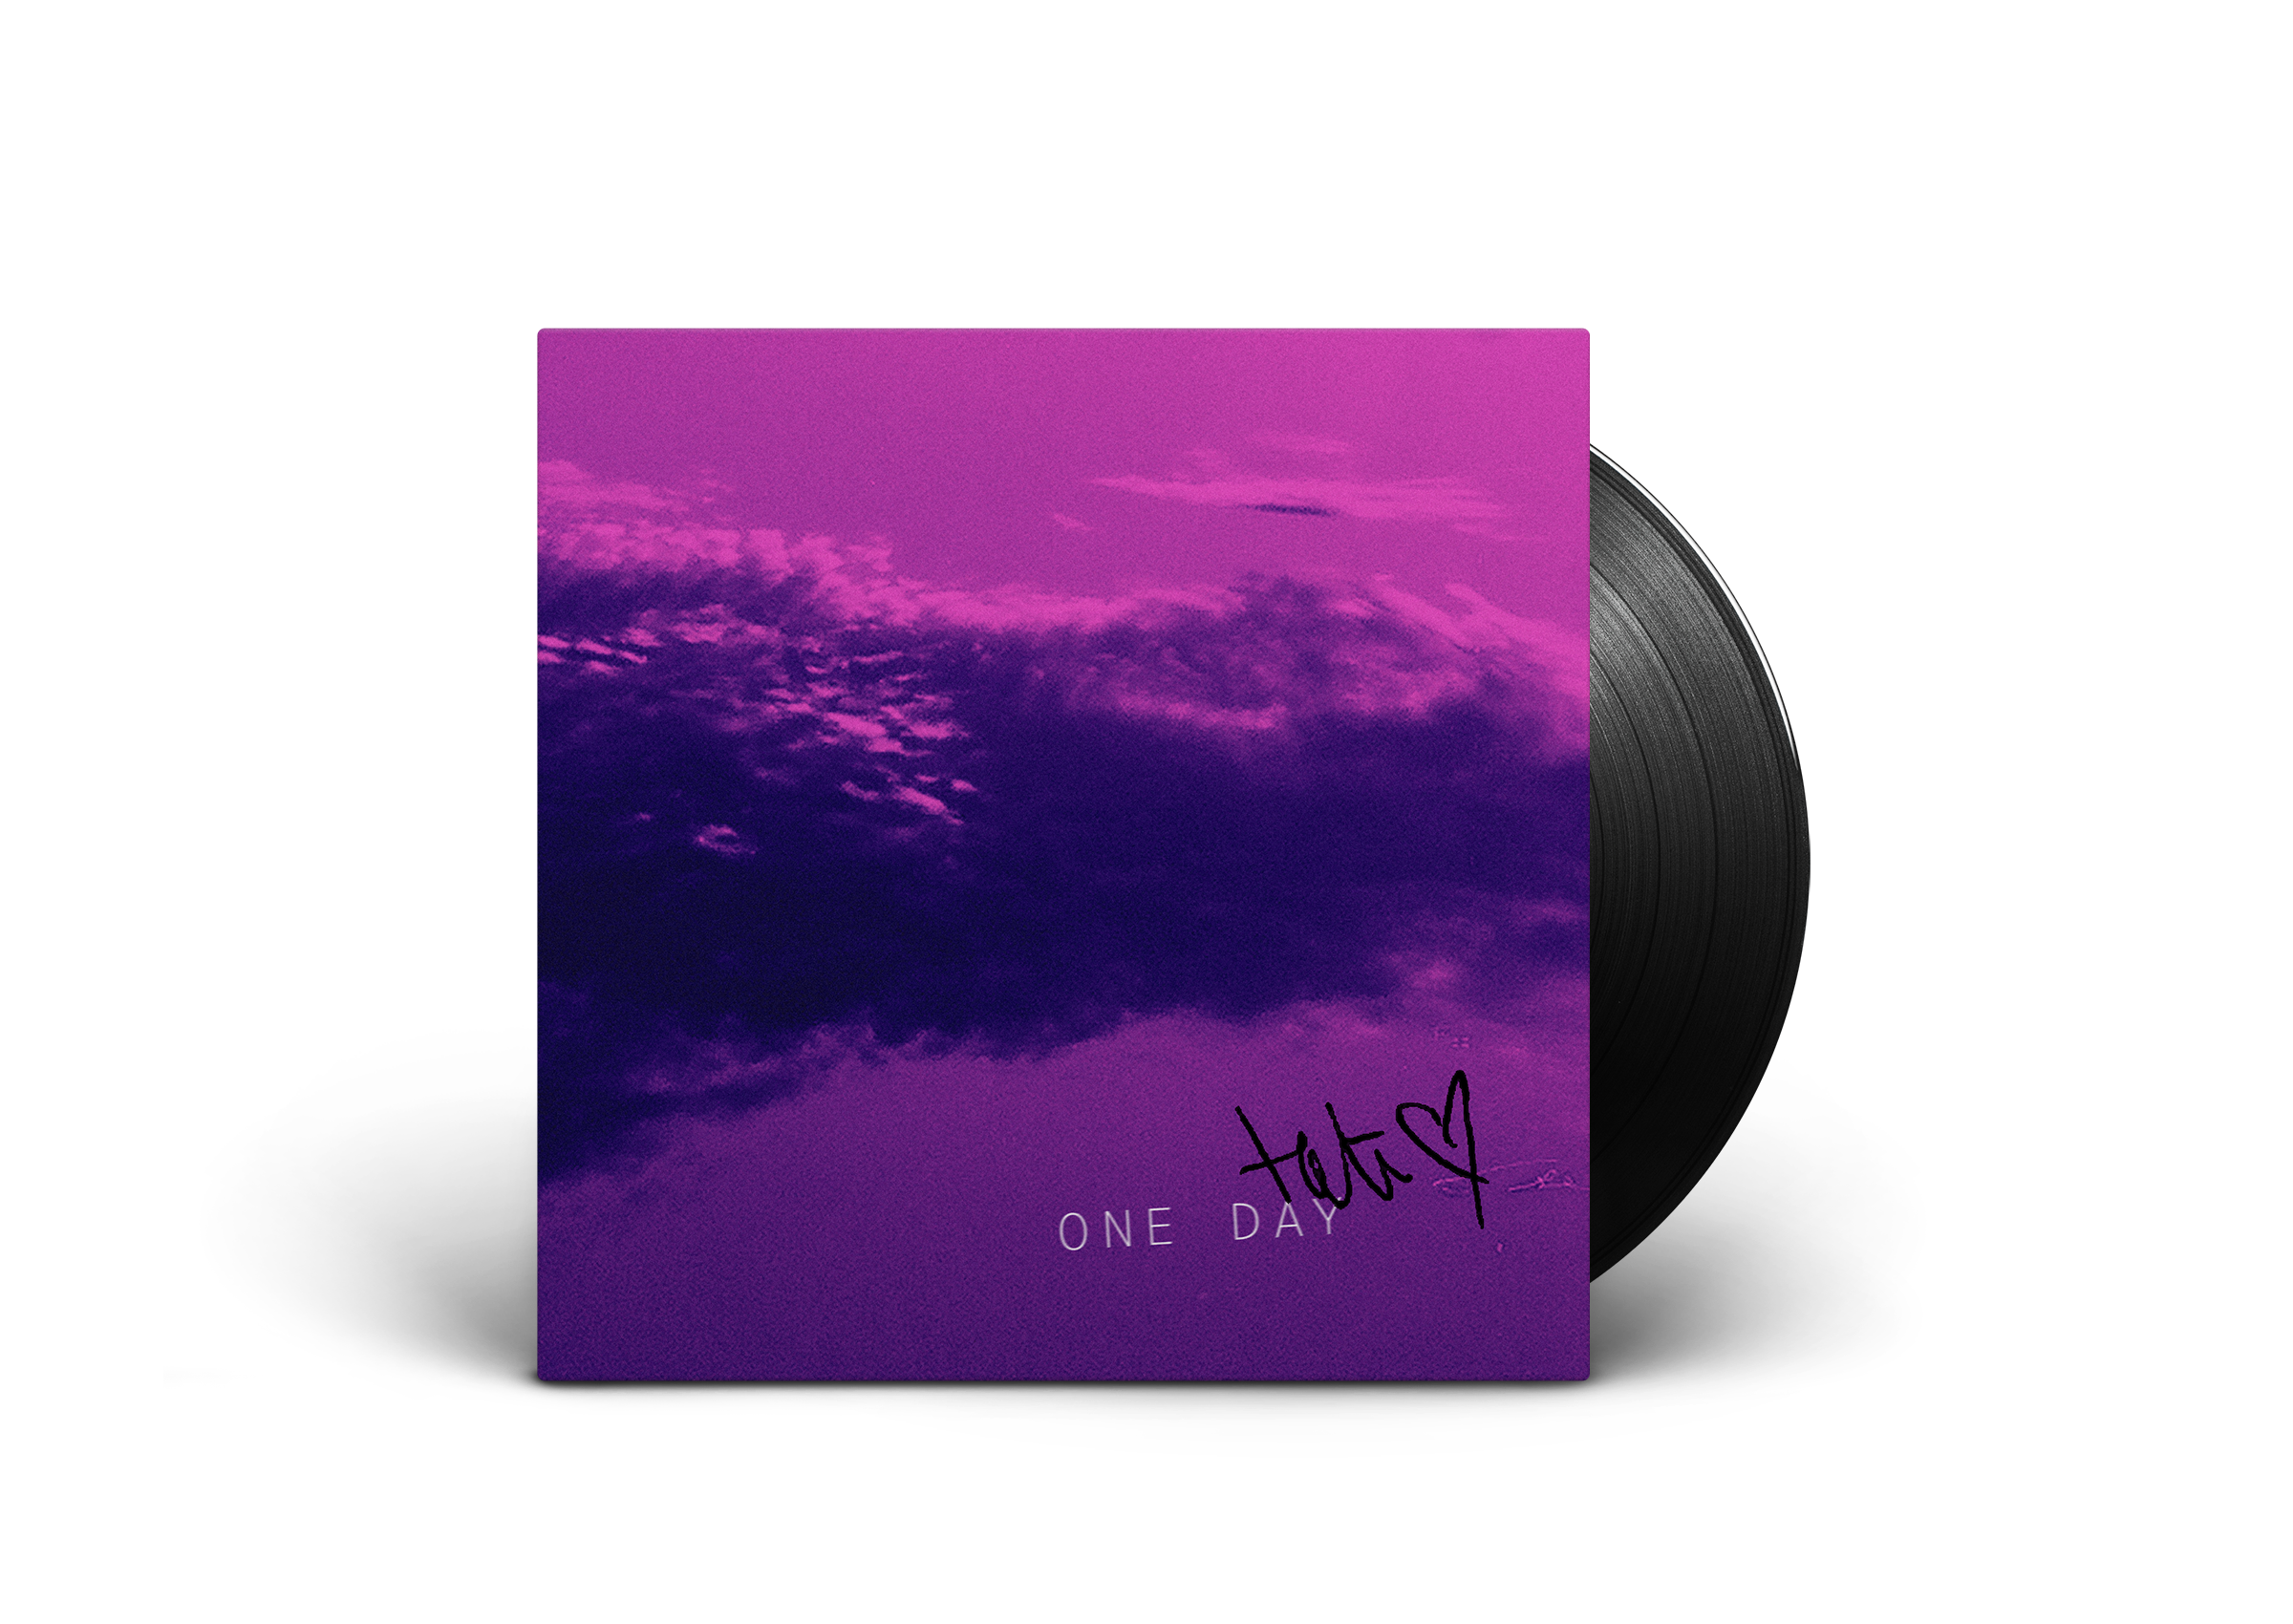 One Day - Signed 7